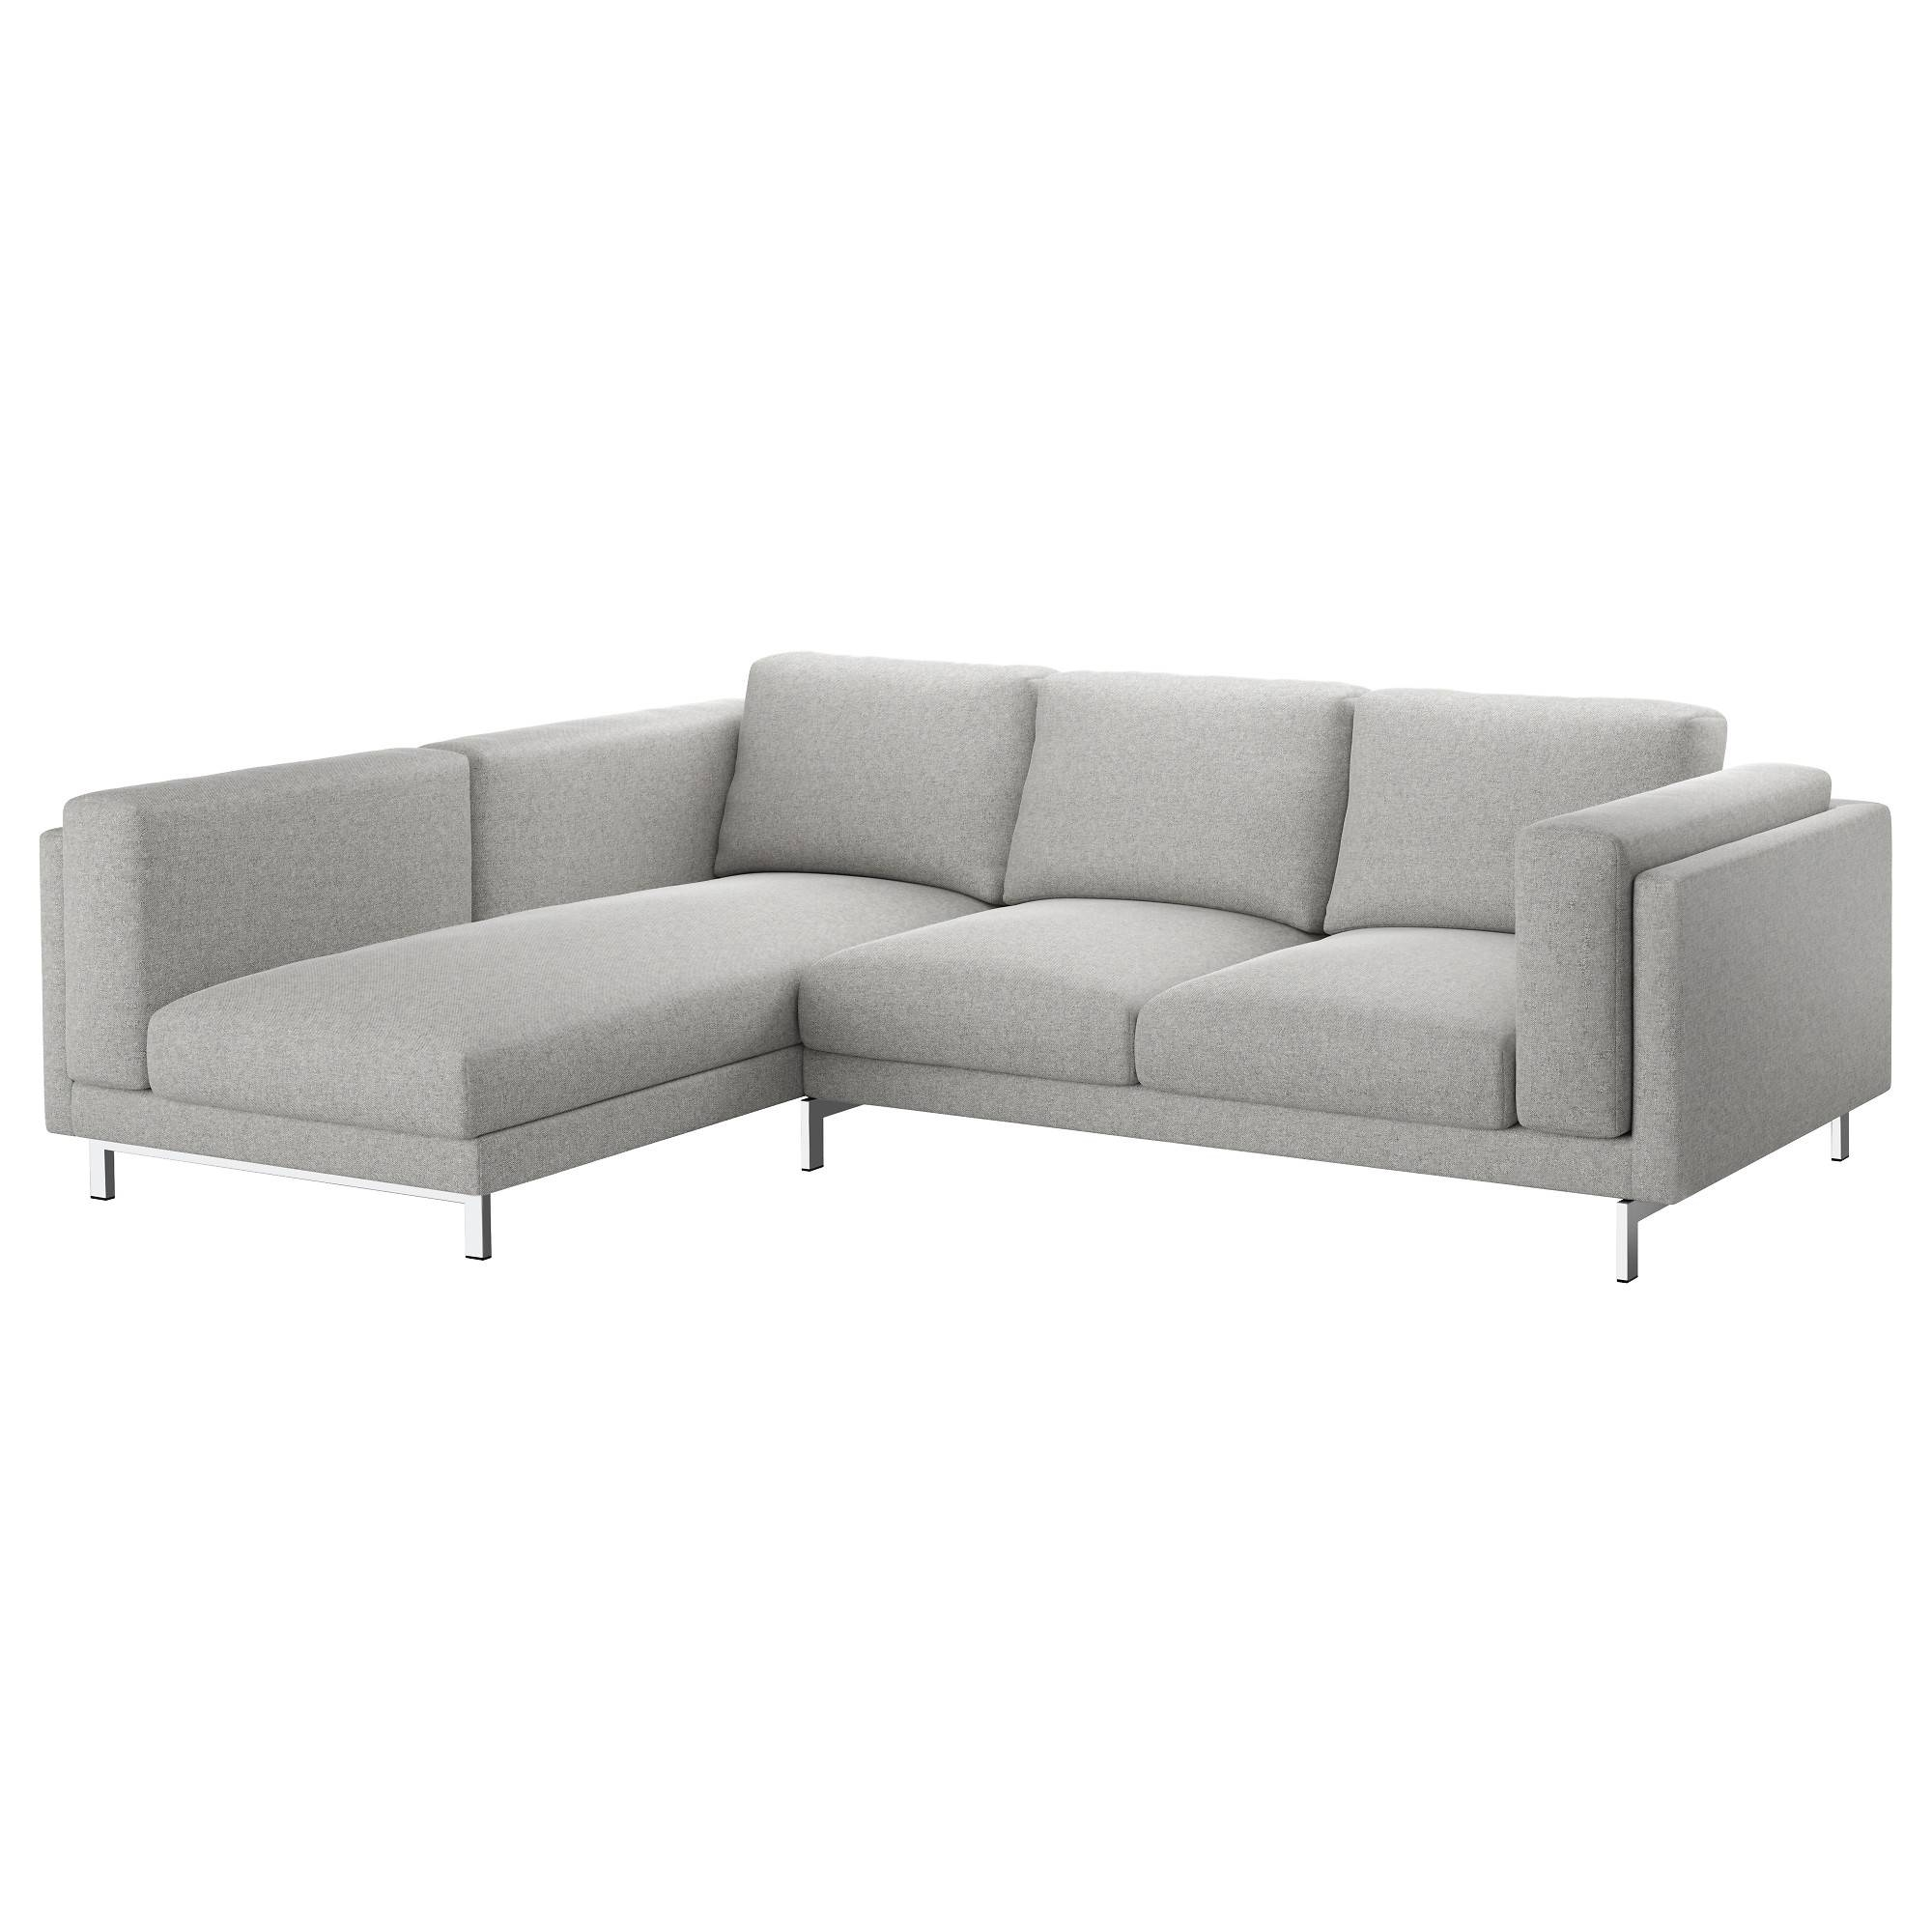 Fabric Sofas - Modern & Contemporary - Ikea throughout Black and White Sofas (Image 13 of 30)